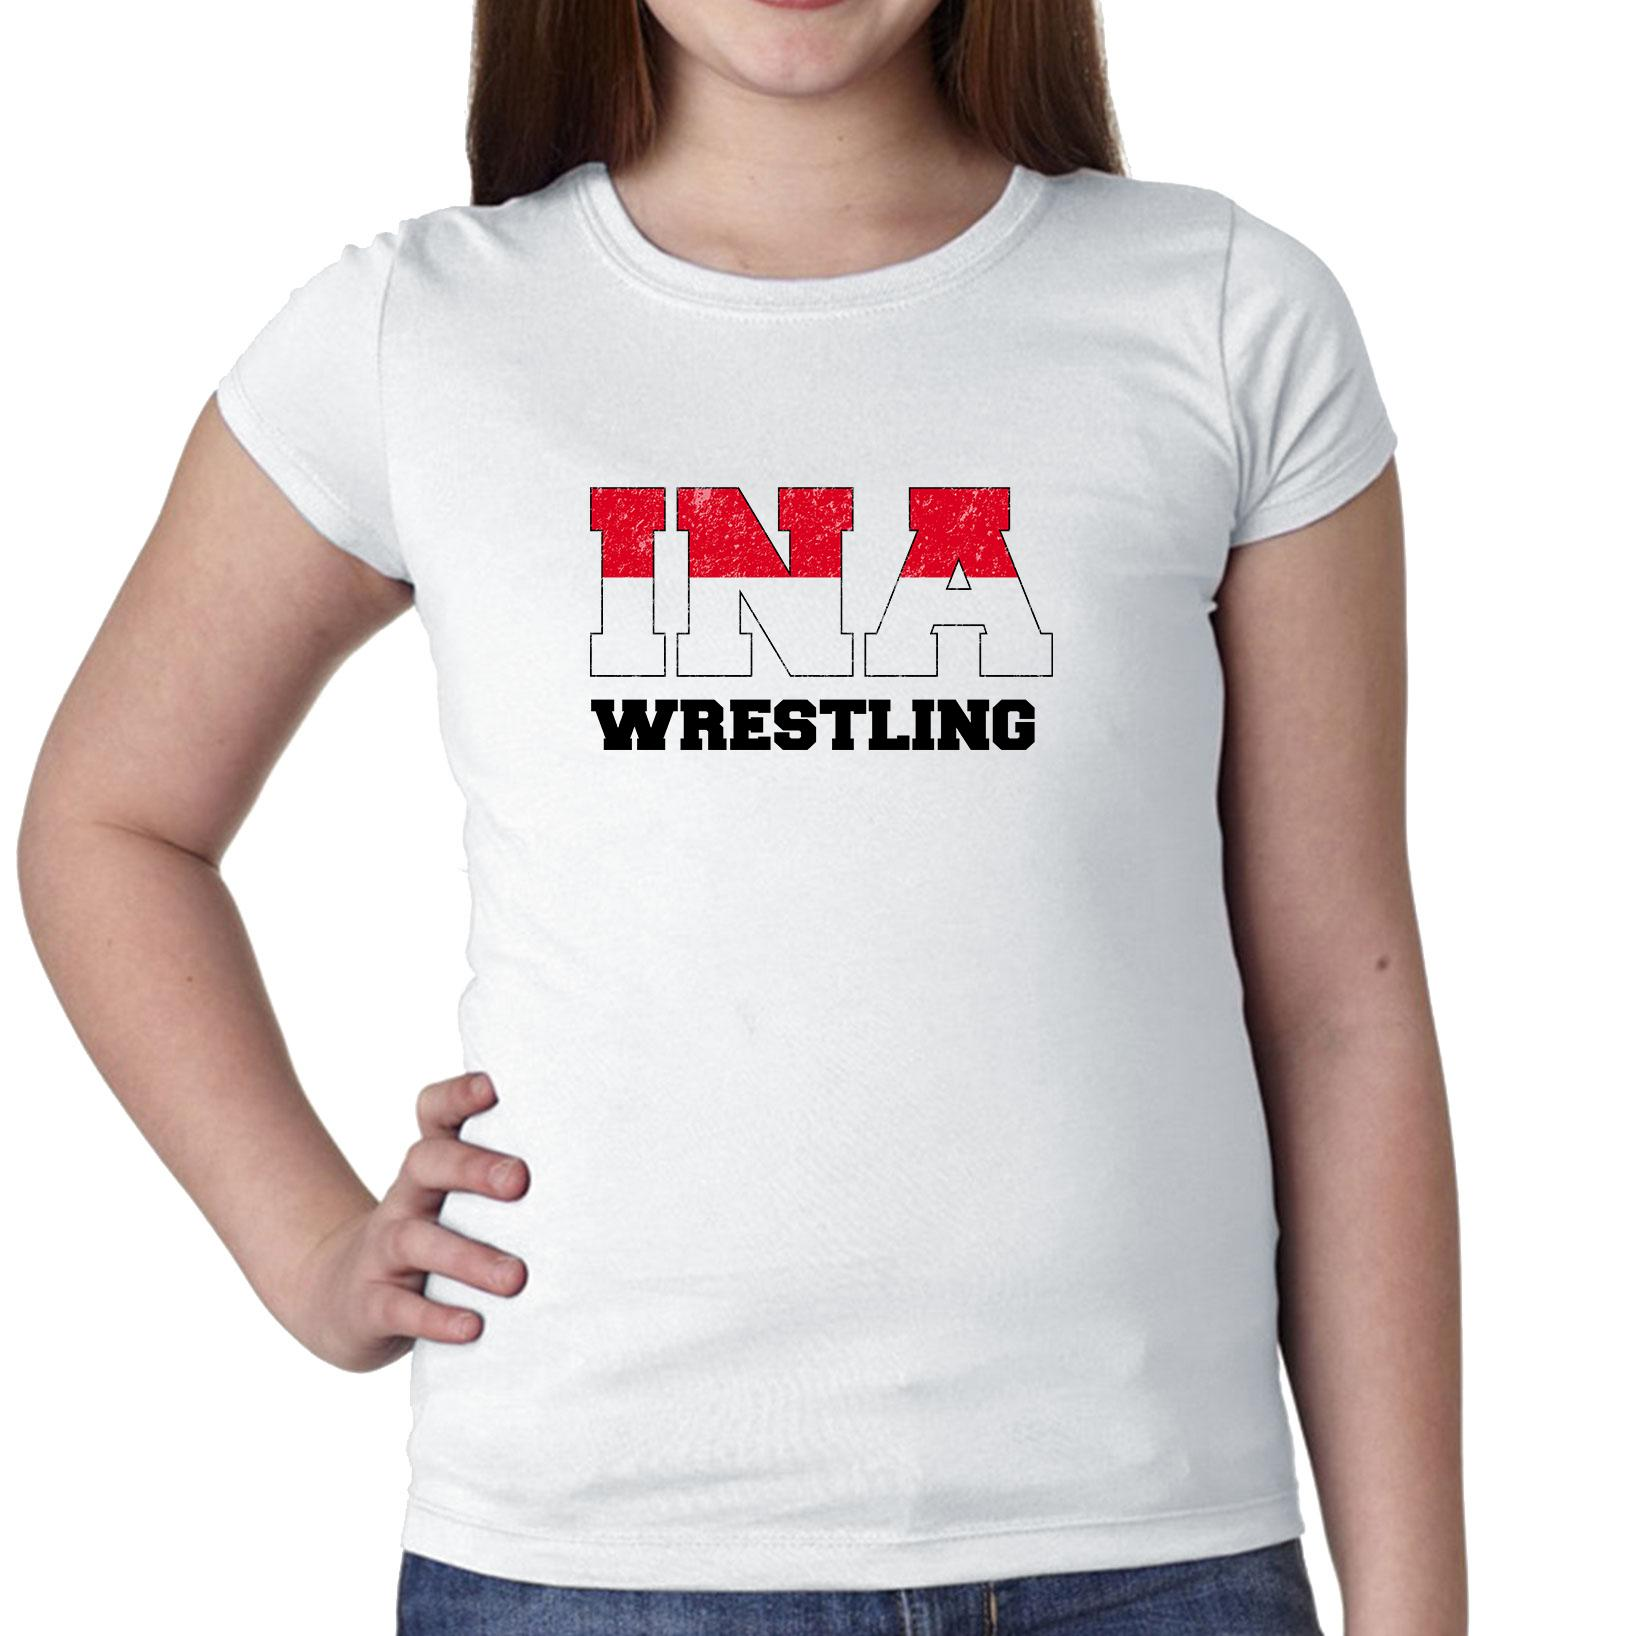 Indonesia Wrestling Olympic Games Rio Flag Girl's Cotton Youth T-Shirt by Hollywood Thread